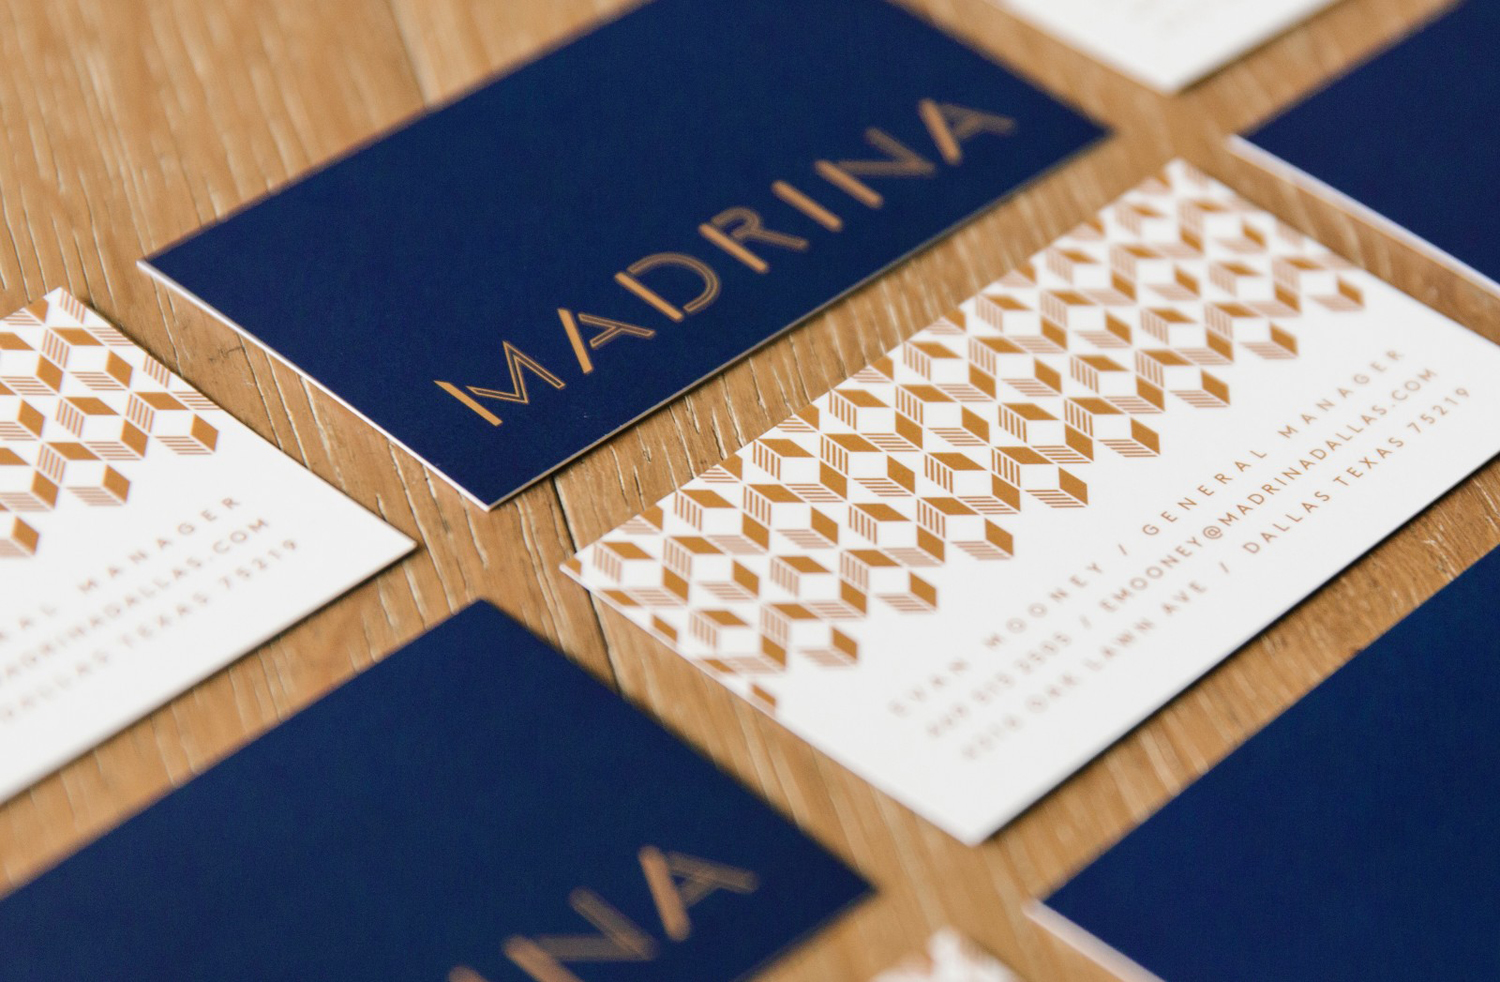 Brand identity and business cards for French inspired Mexican restaurant Madrina designed by Mast